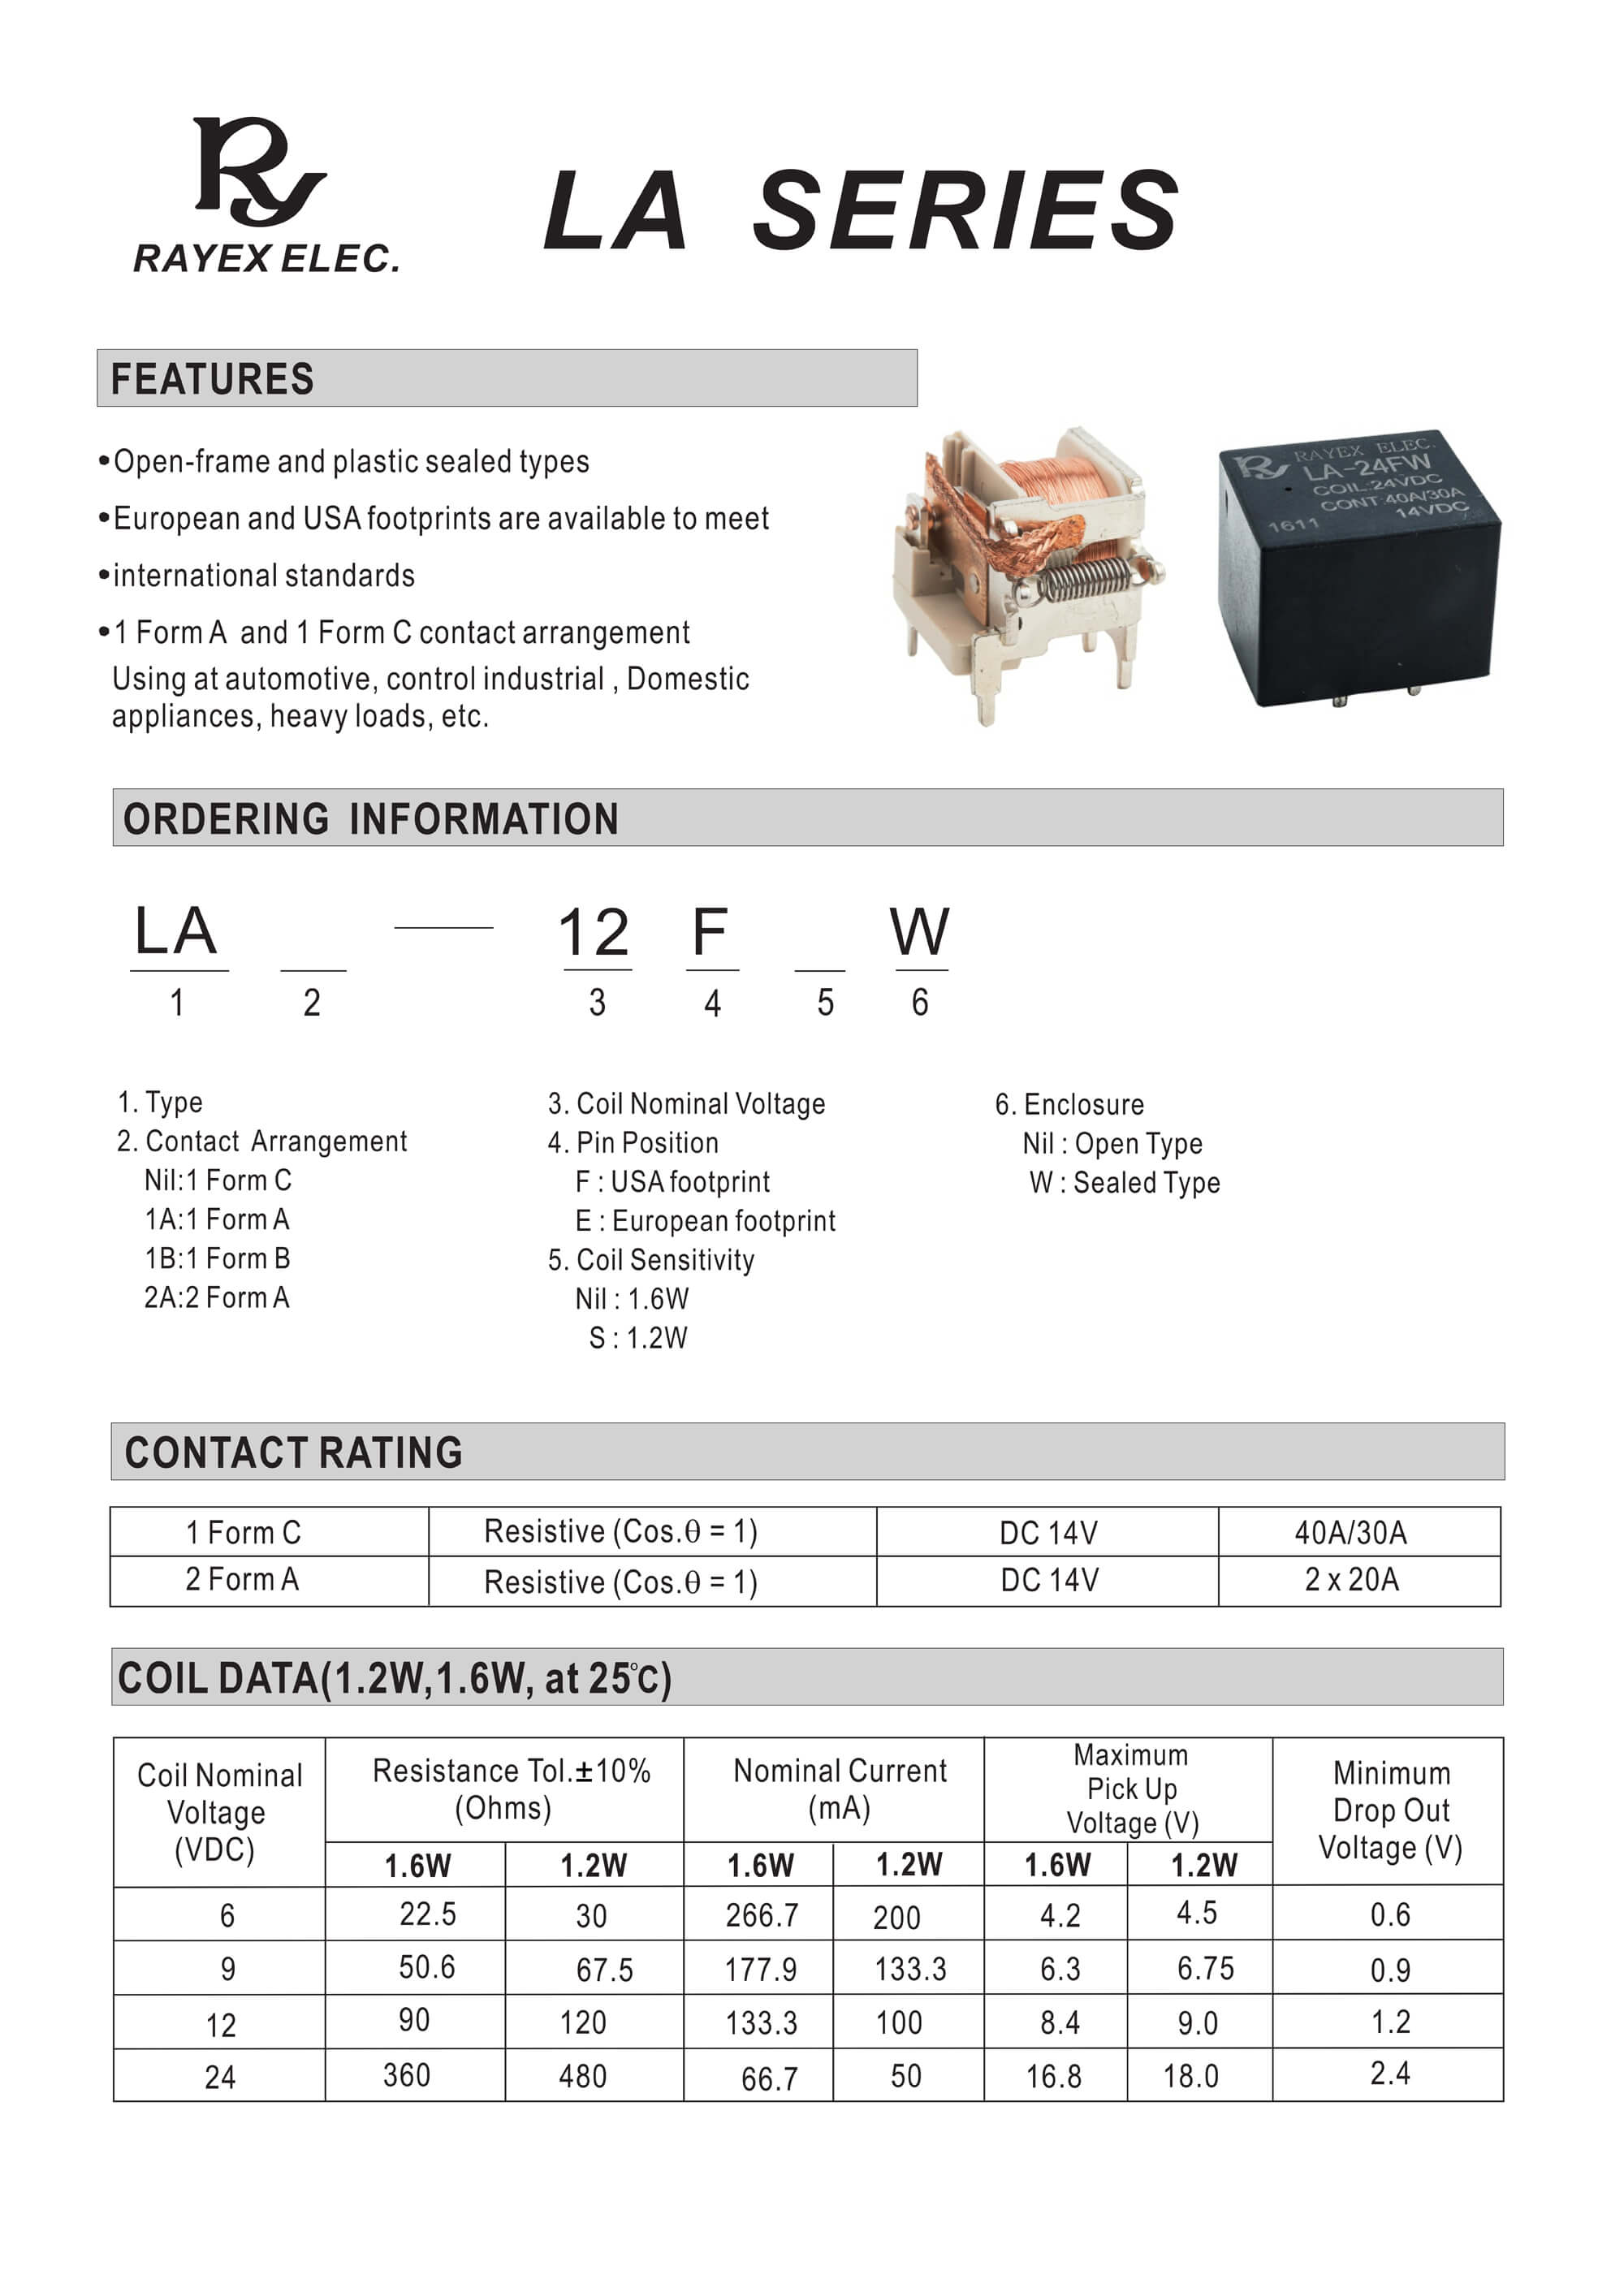 5 Pin Relay Explained 1 Form A La Series Buy 12 Volt 4 Automotive